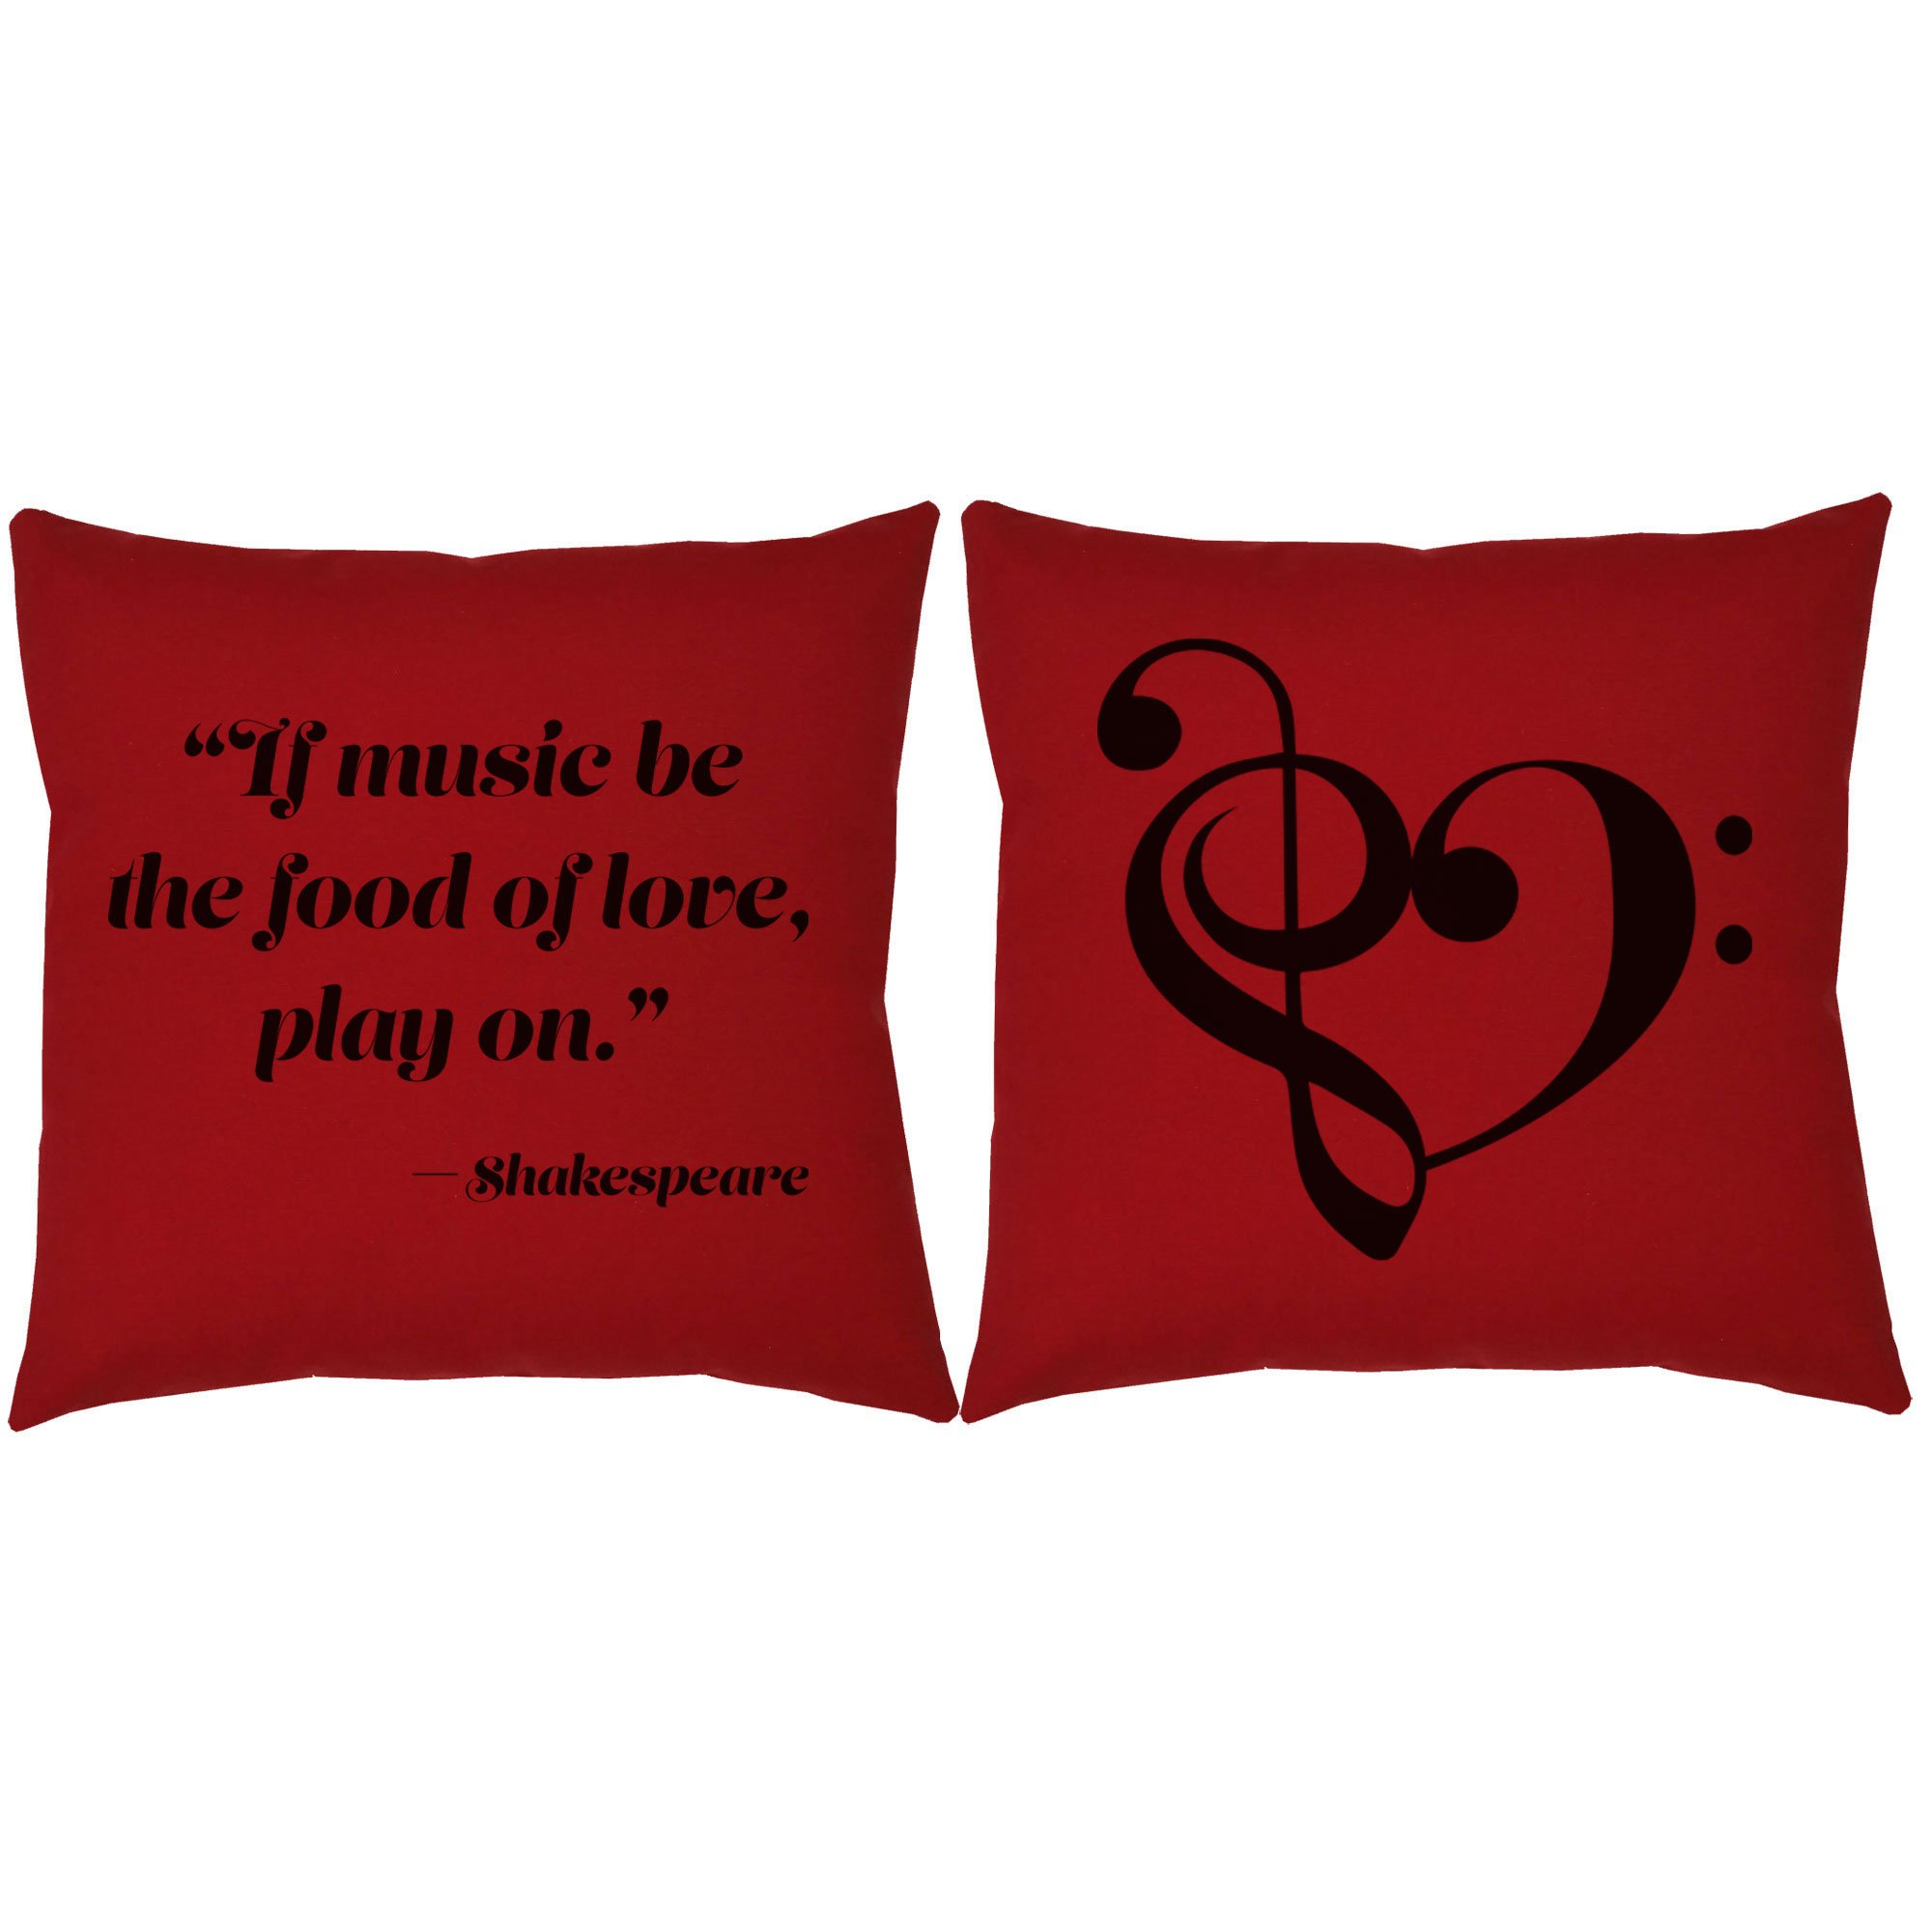 Set of 2 RoomCraft Music is the Food of Love Throw Pillows 20x20 Square Red Cotton Shakespeare Quote Cushions